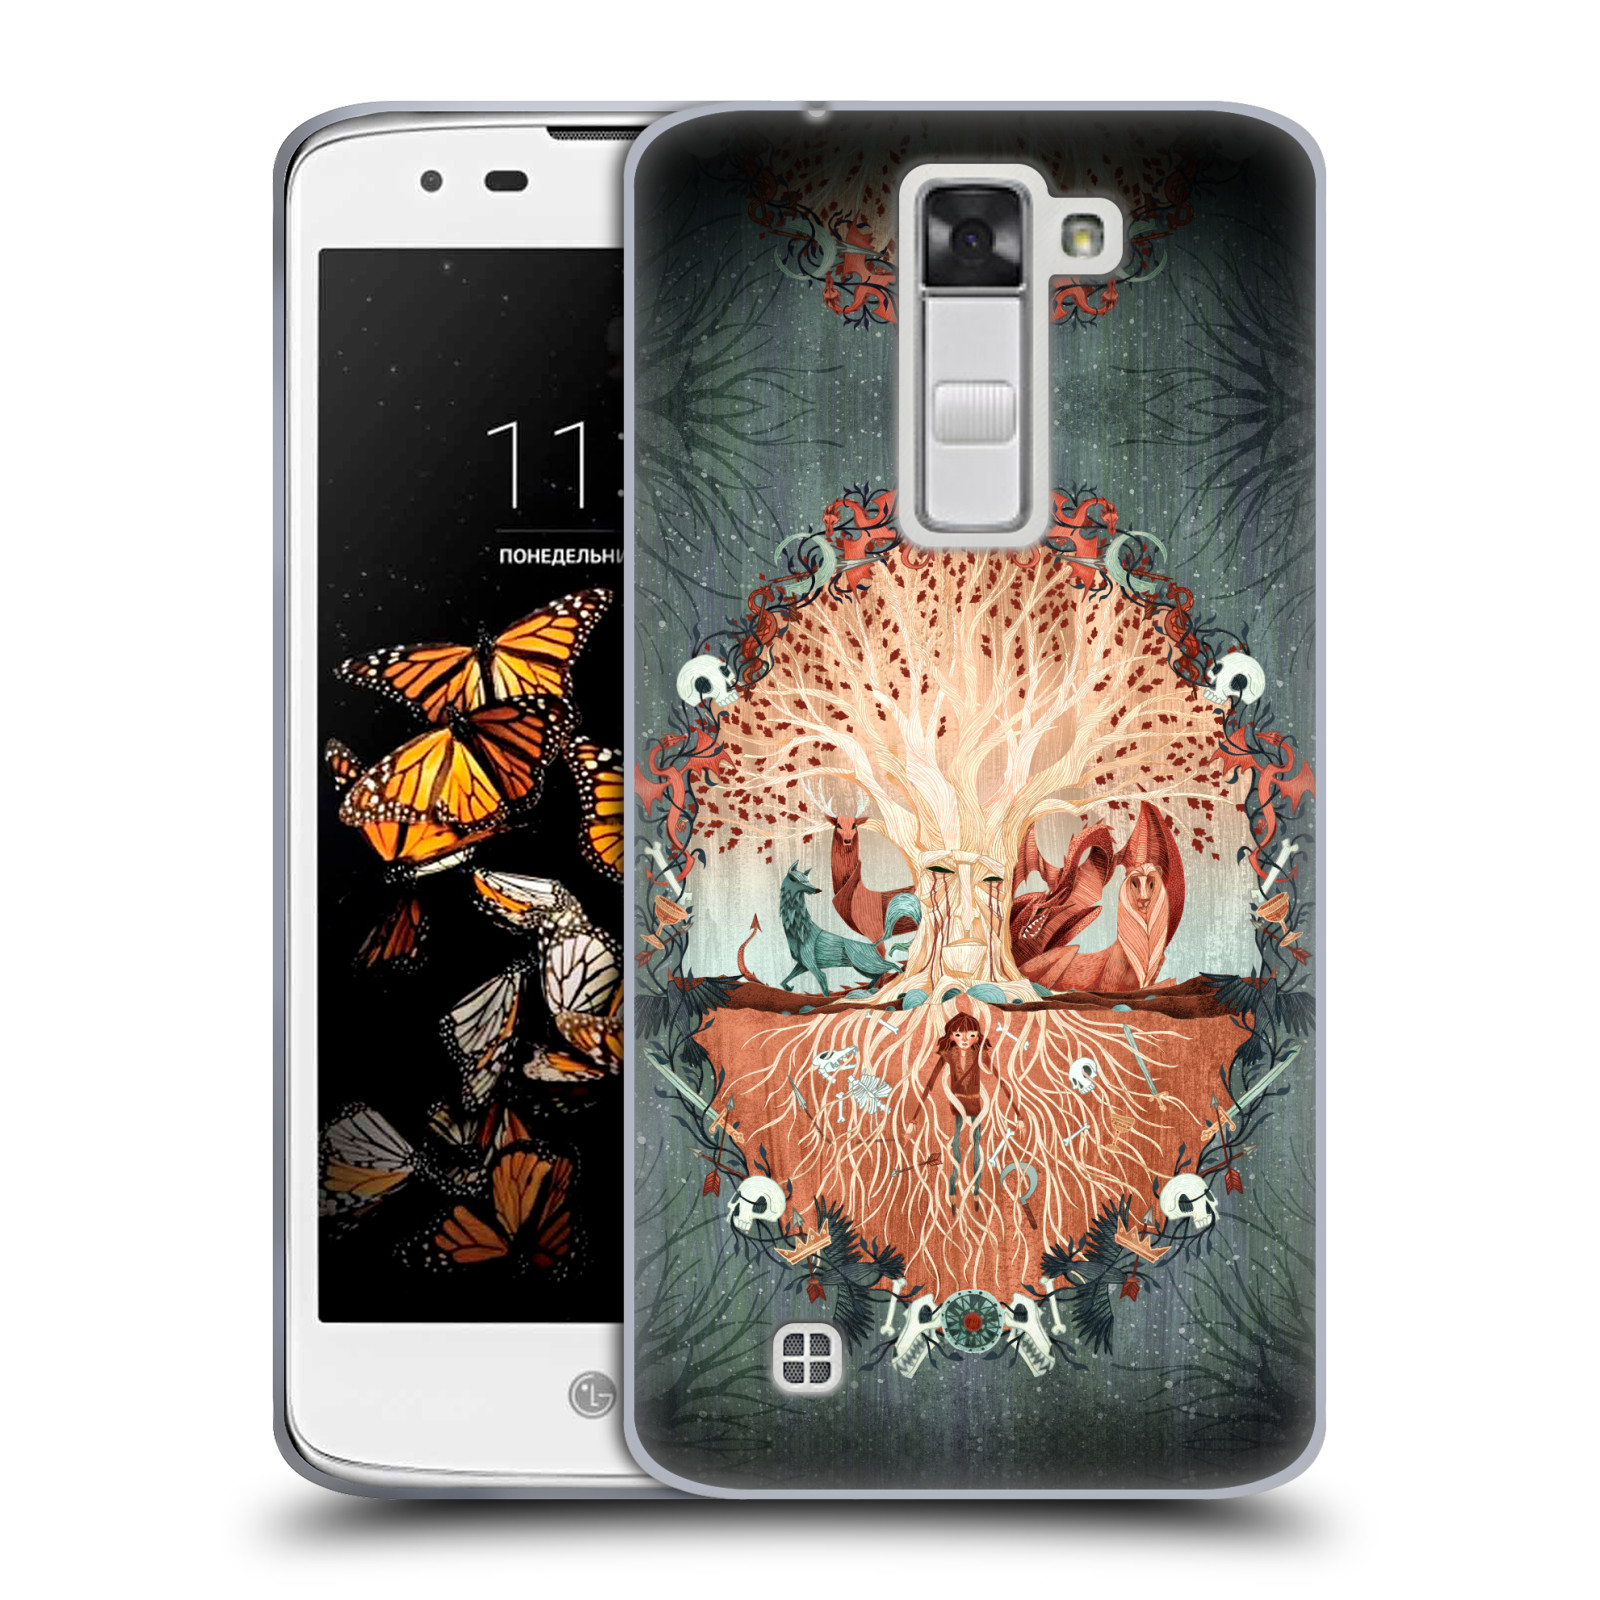 OFFICIAL-ANNE-LAMBELET-EERIE-SOFT-GEL-CASE-FOR-LG-PHONES-2